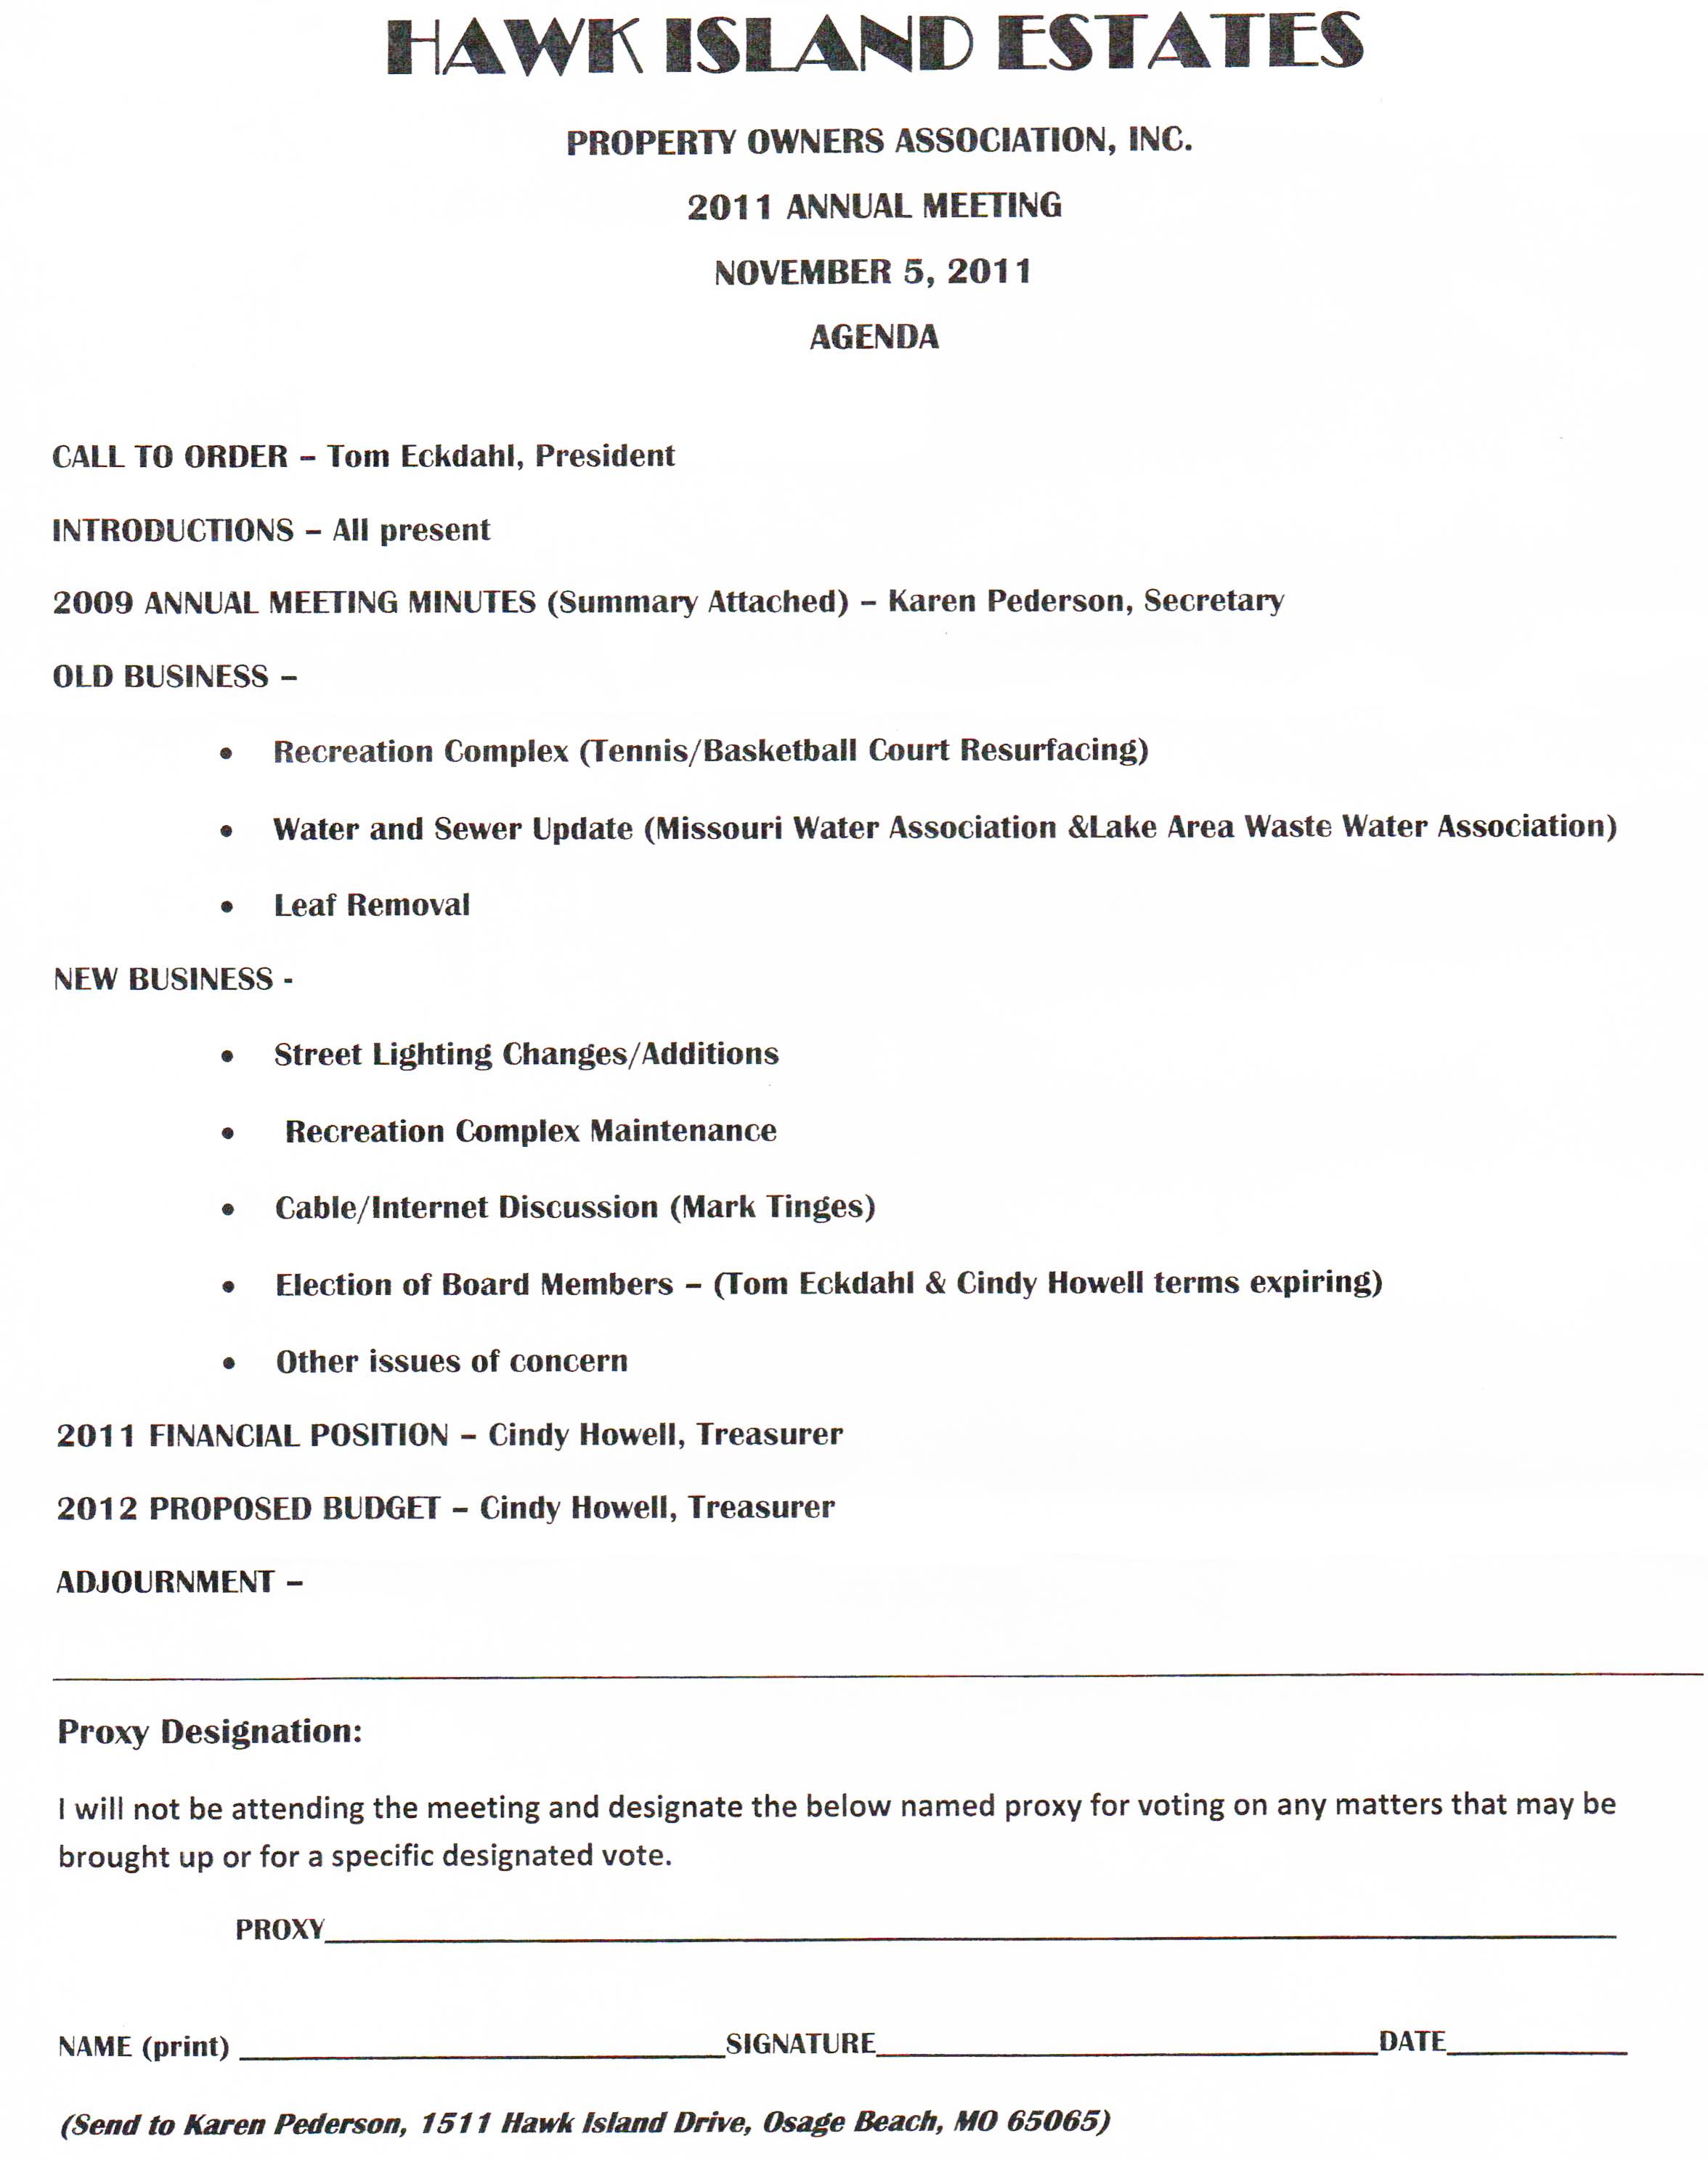 Annual privacy notice cover letter